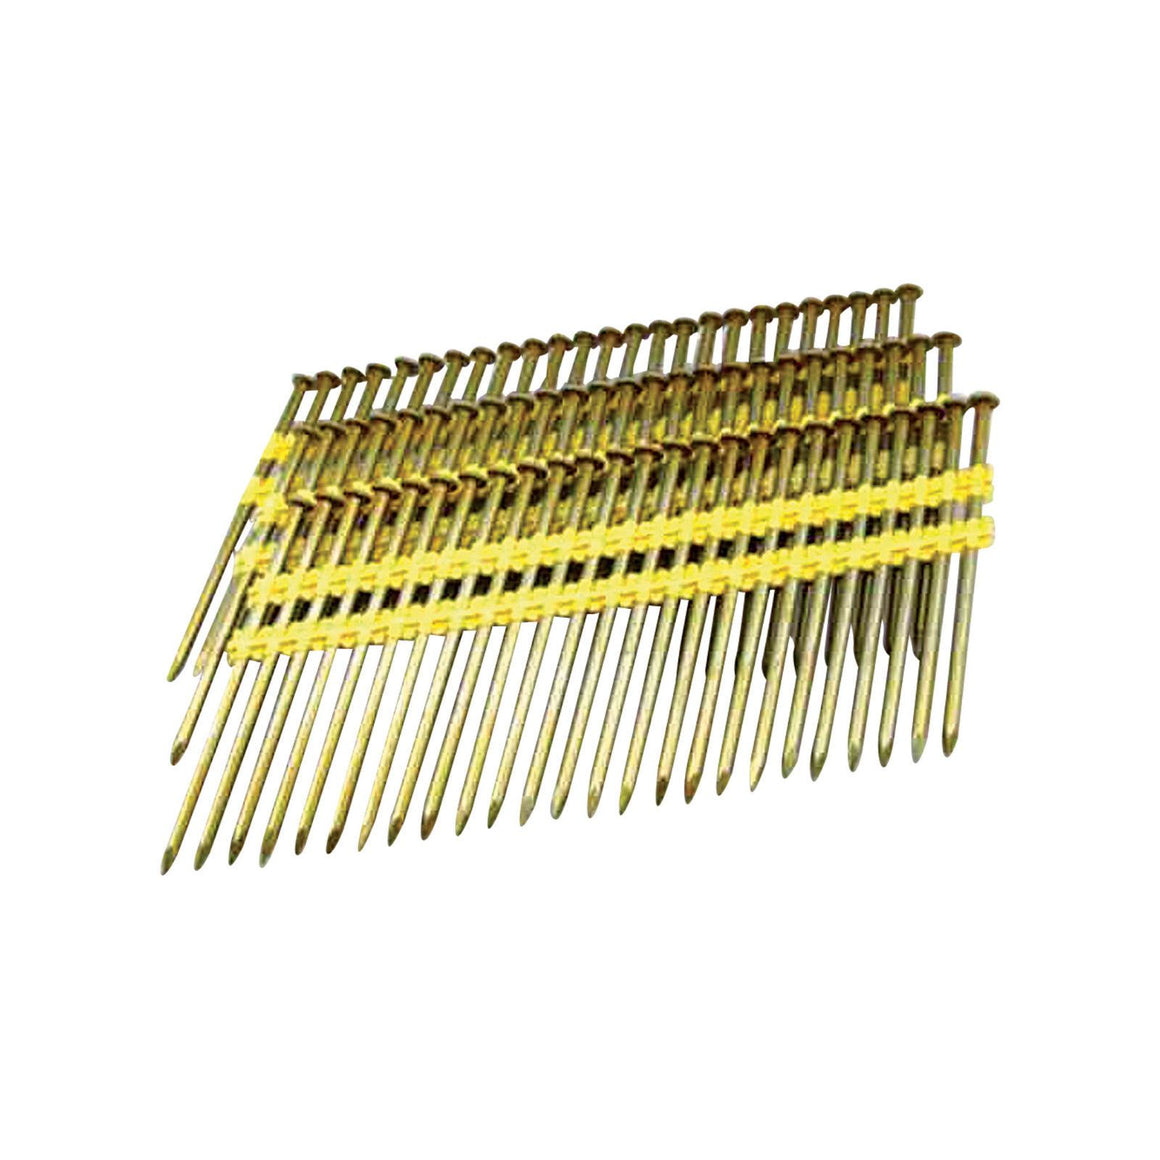 "800-314 Round Head Plastic Strip 10D Framing Nails - 3-1/4"" Length - 500 Count - Surebonder"